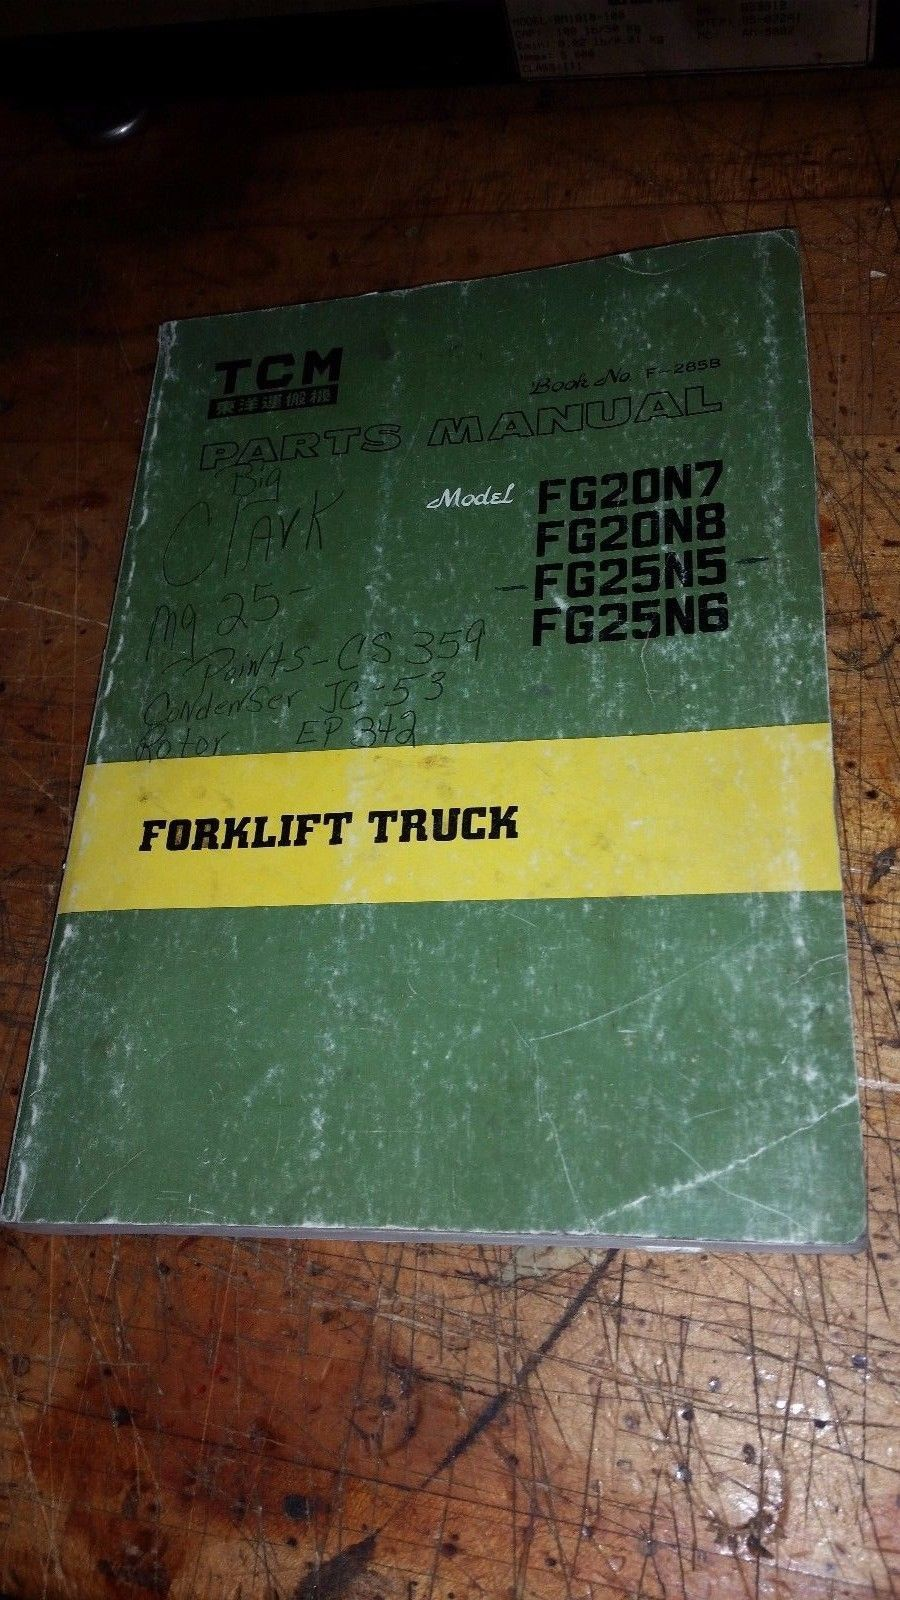 ONE TCM FORK LIFT TRUCK PARTS MANUAL FG20 FG25